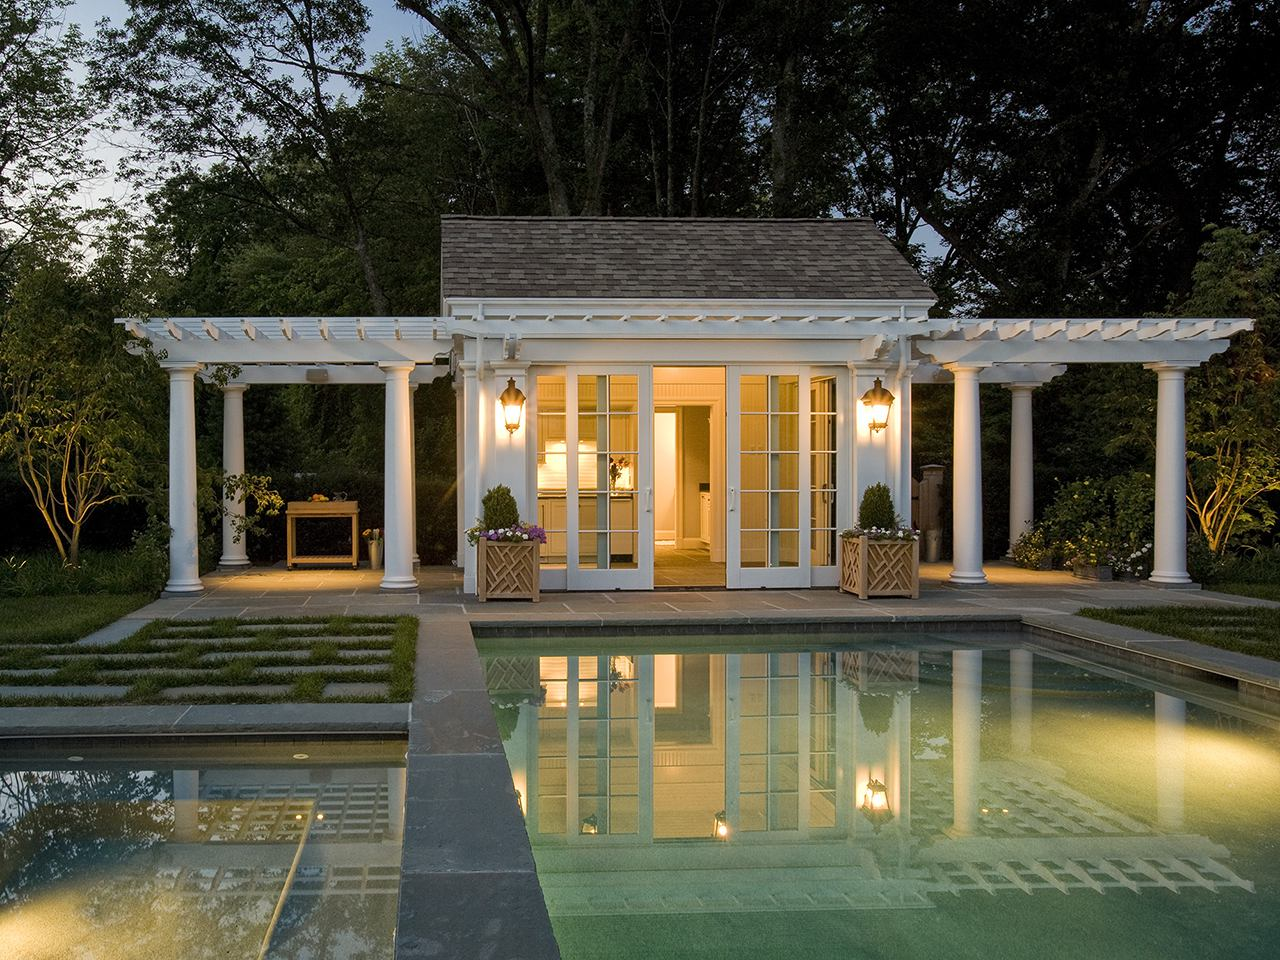 Weston pool cabana by Merrimack Design